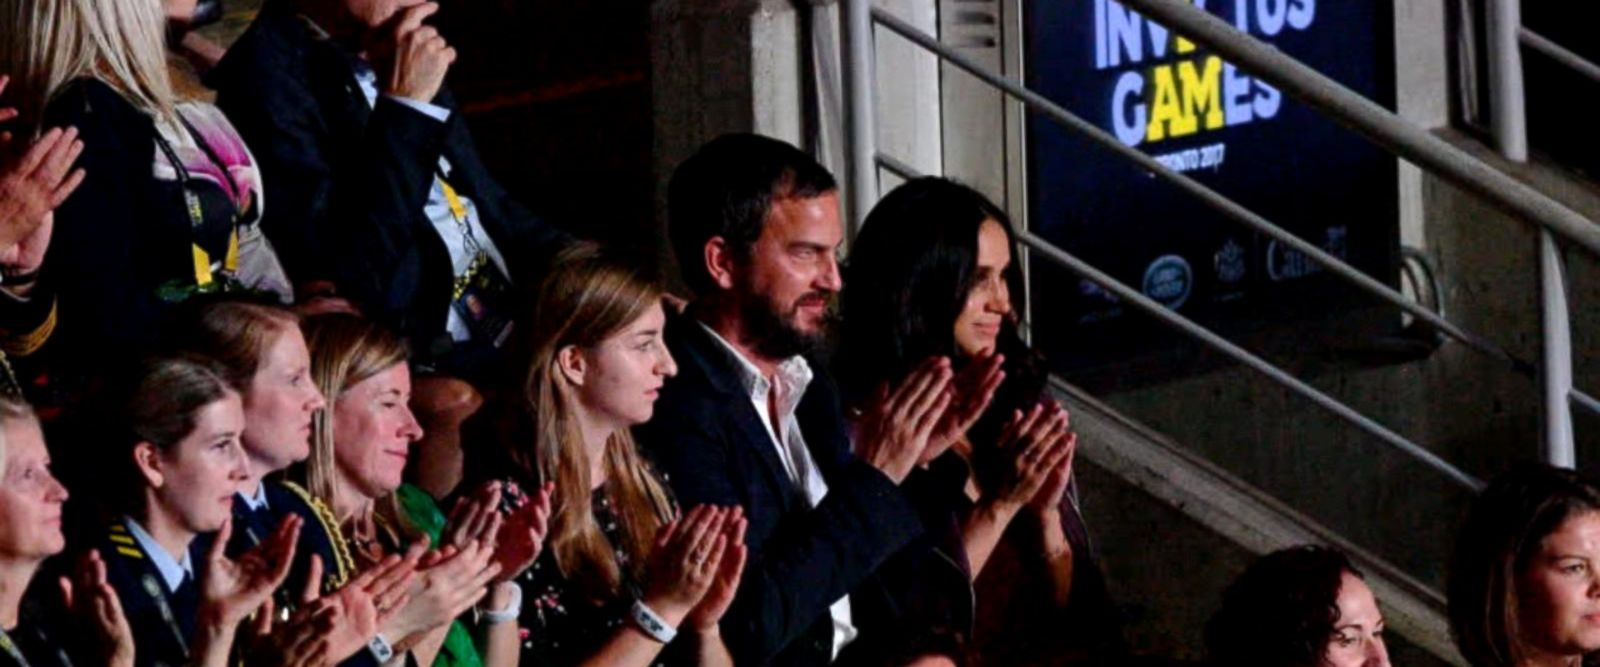 VIDEO: Meghan Markle supports Prince Harry at Invictus Games